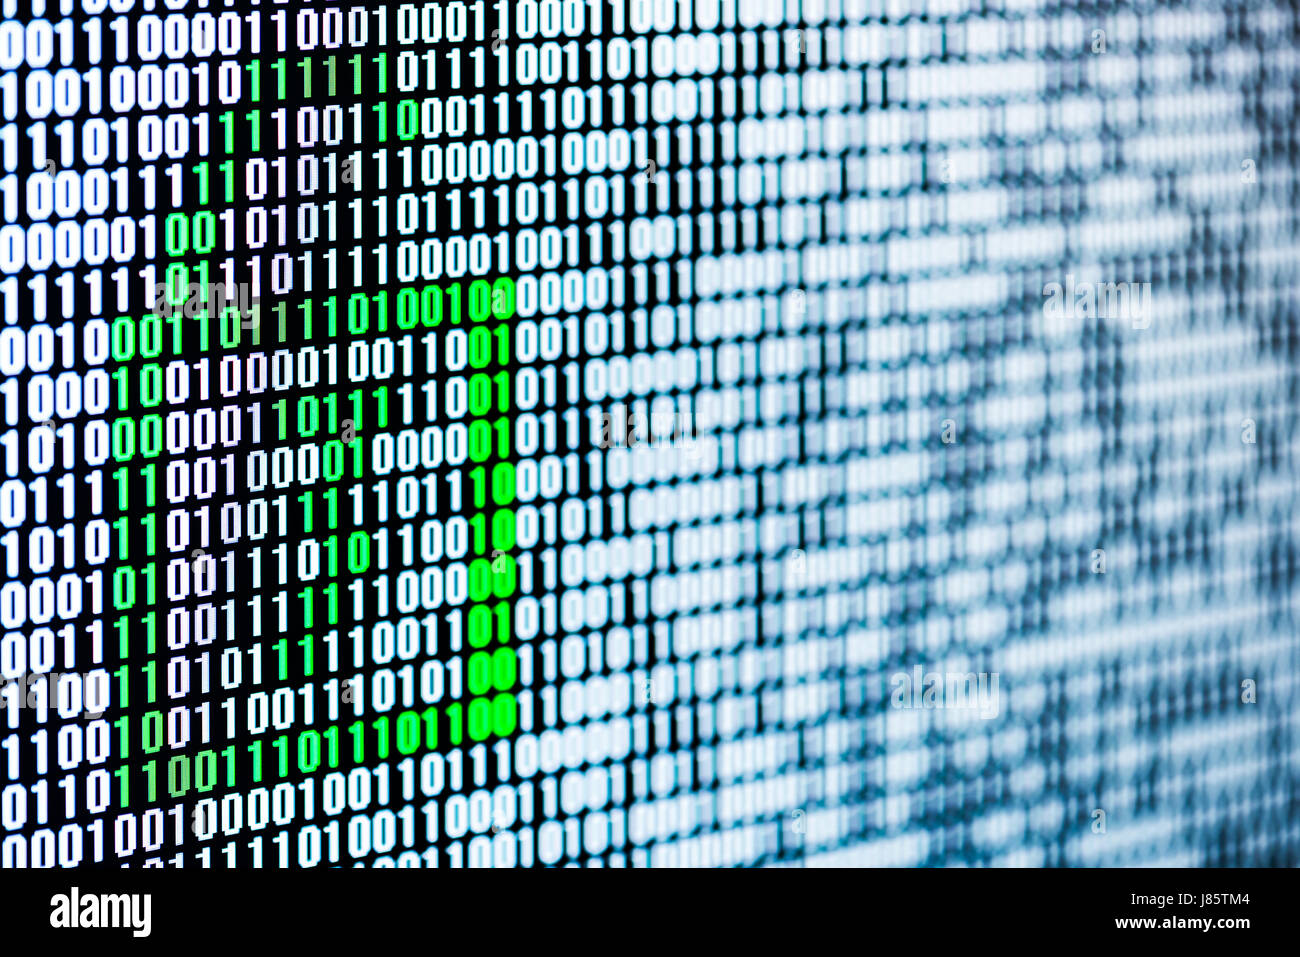 unlocked green locker in a binary sequence figuring uncrypted data on screen - Stock Image